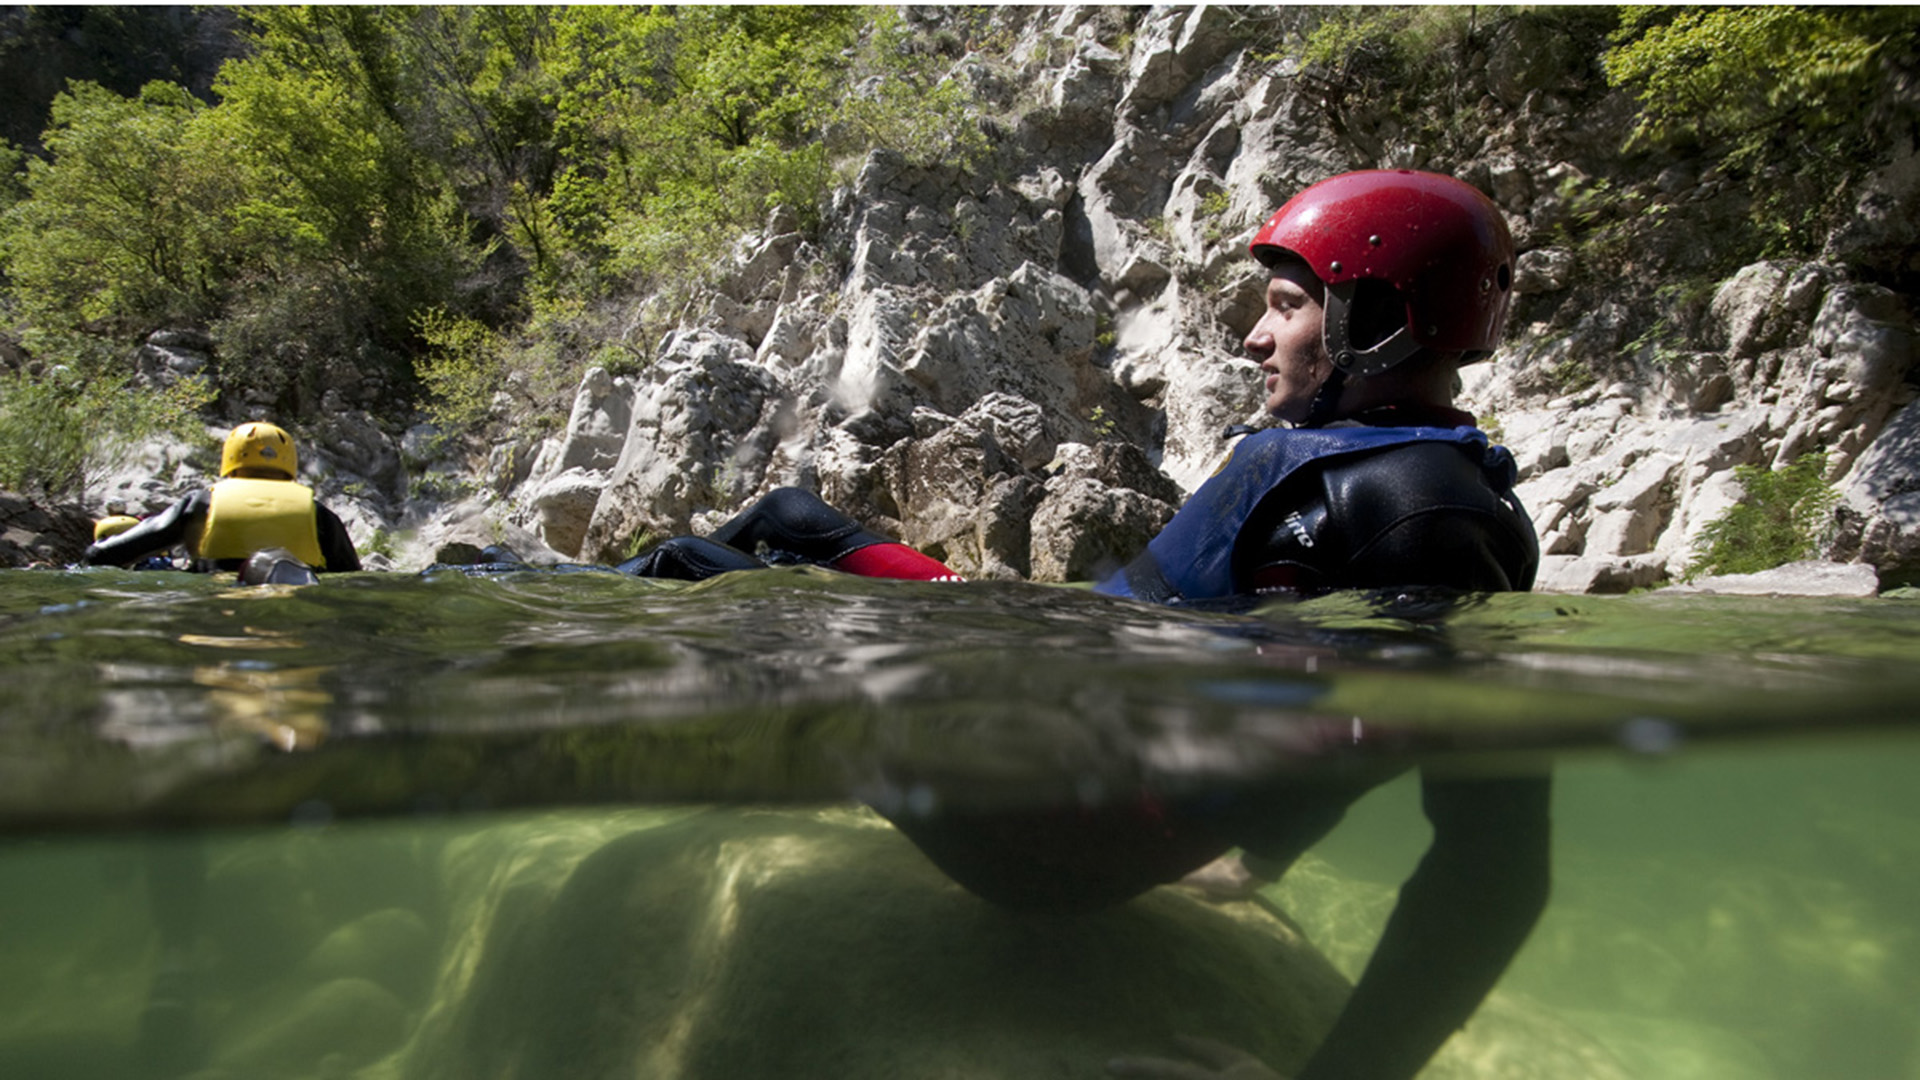 river canyoning adrenaline adventure 4